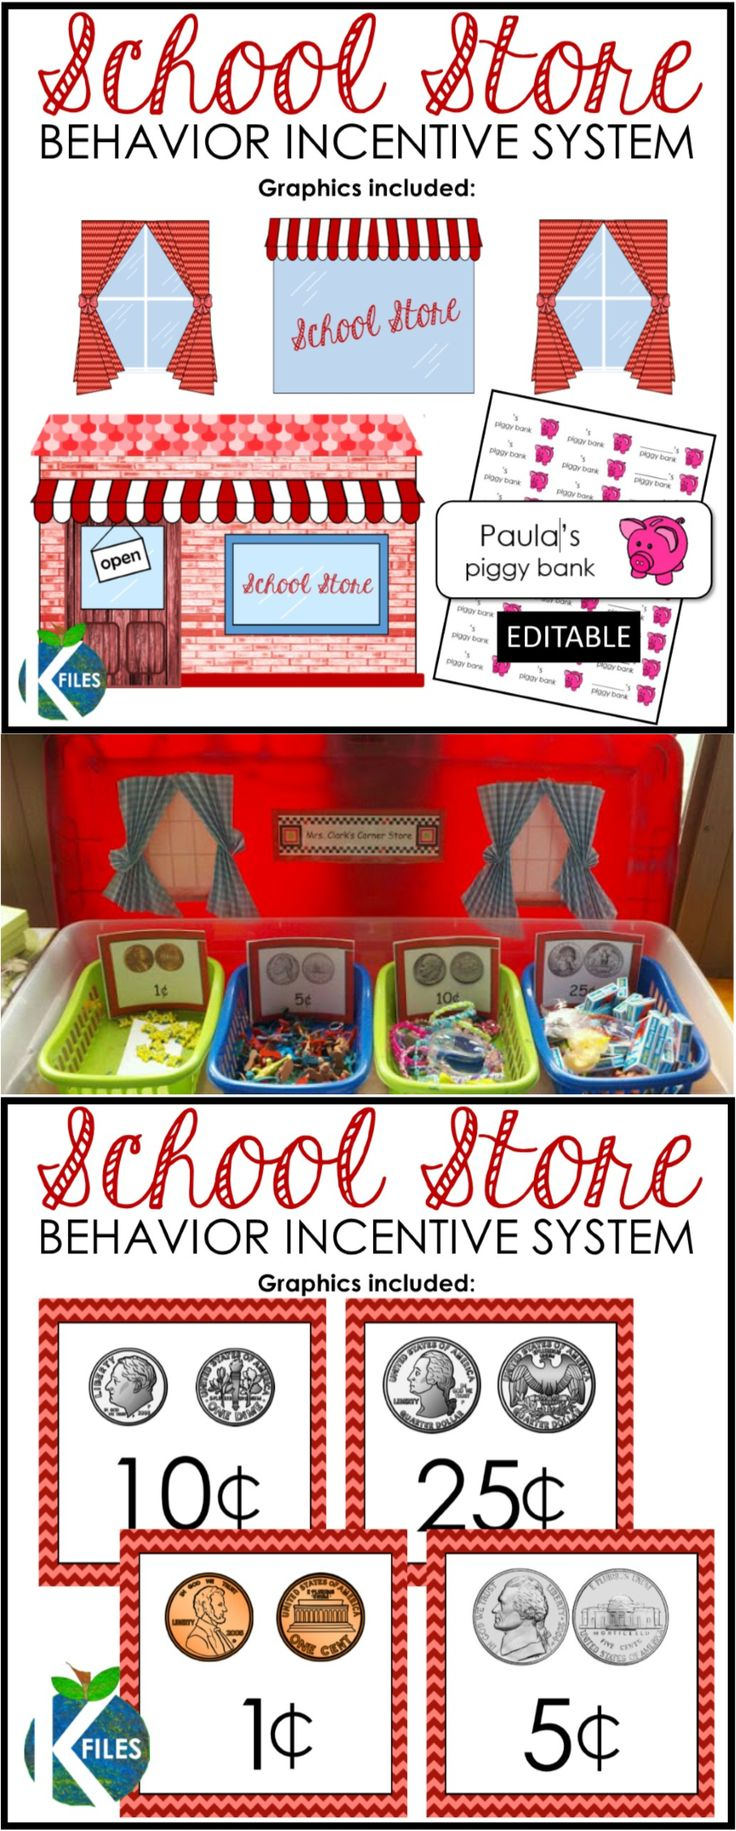 School Store Behavior Incentive System using play coins and student piggy banks.  Students learn the value of coins in addition to a classroom behavior management system.